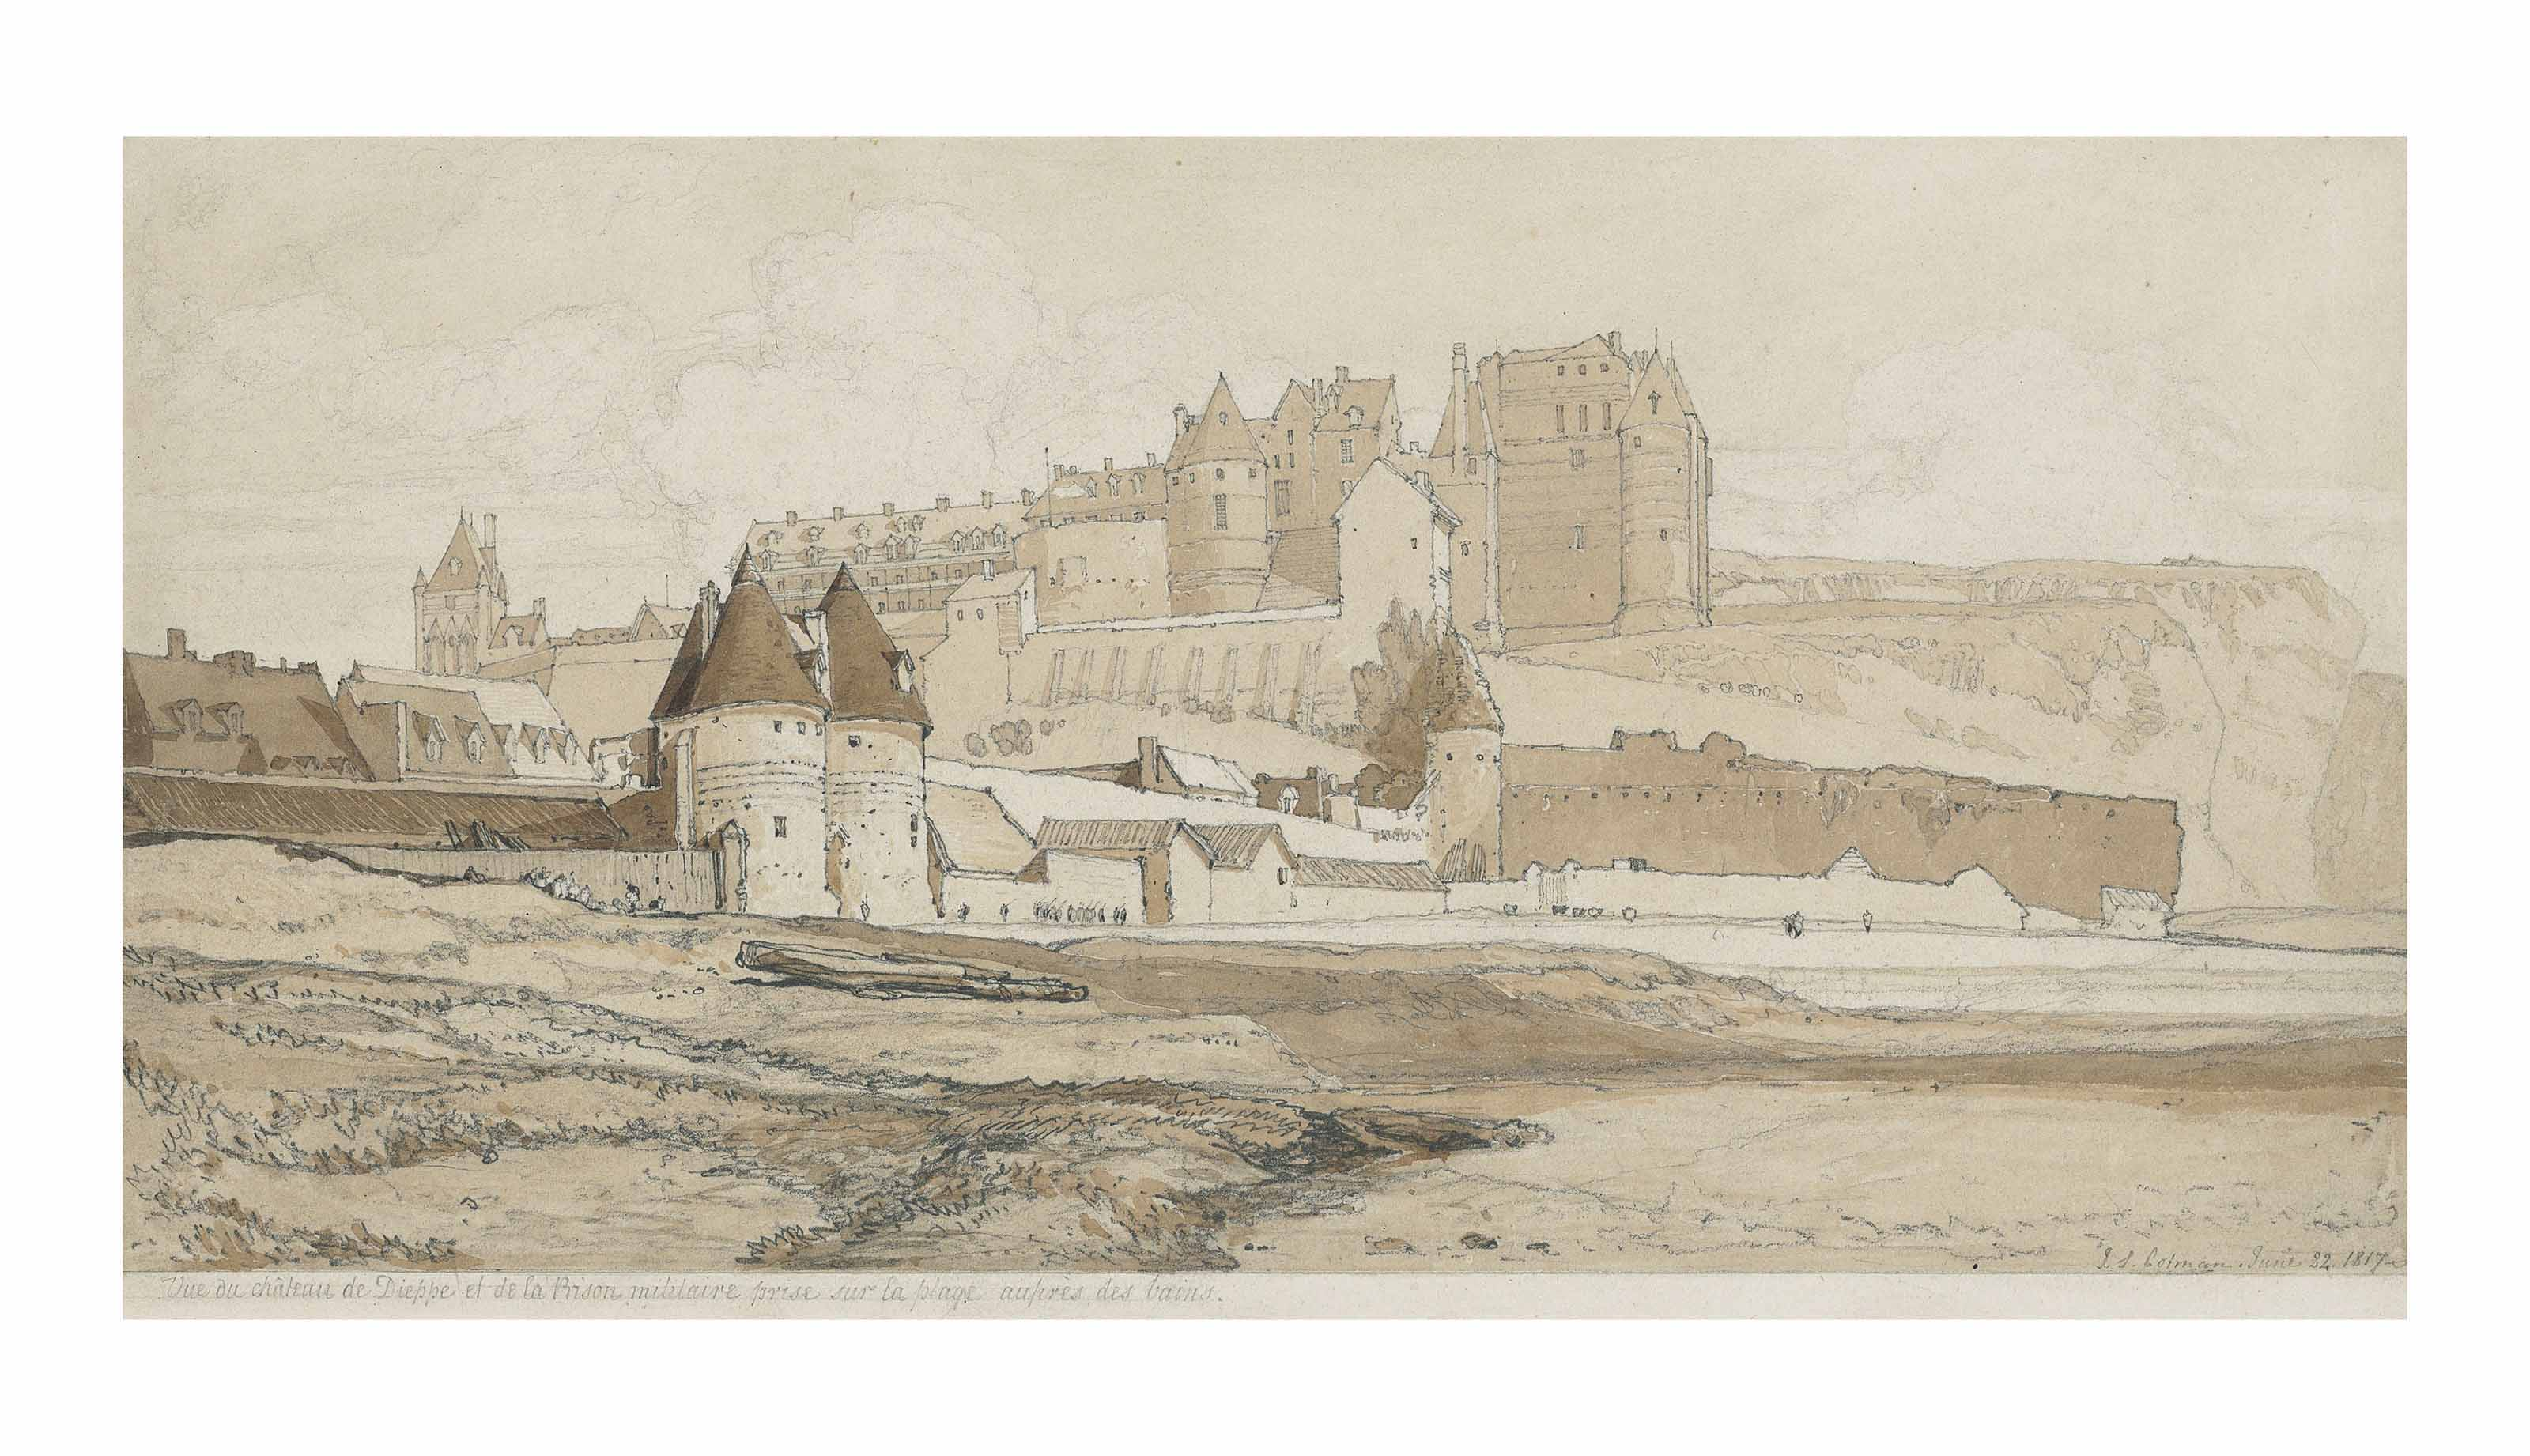 The Château of Dieppe and the Prison, Normandy, seen from the beach